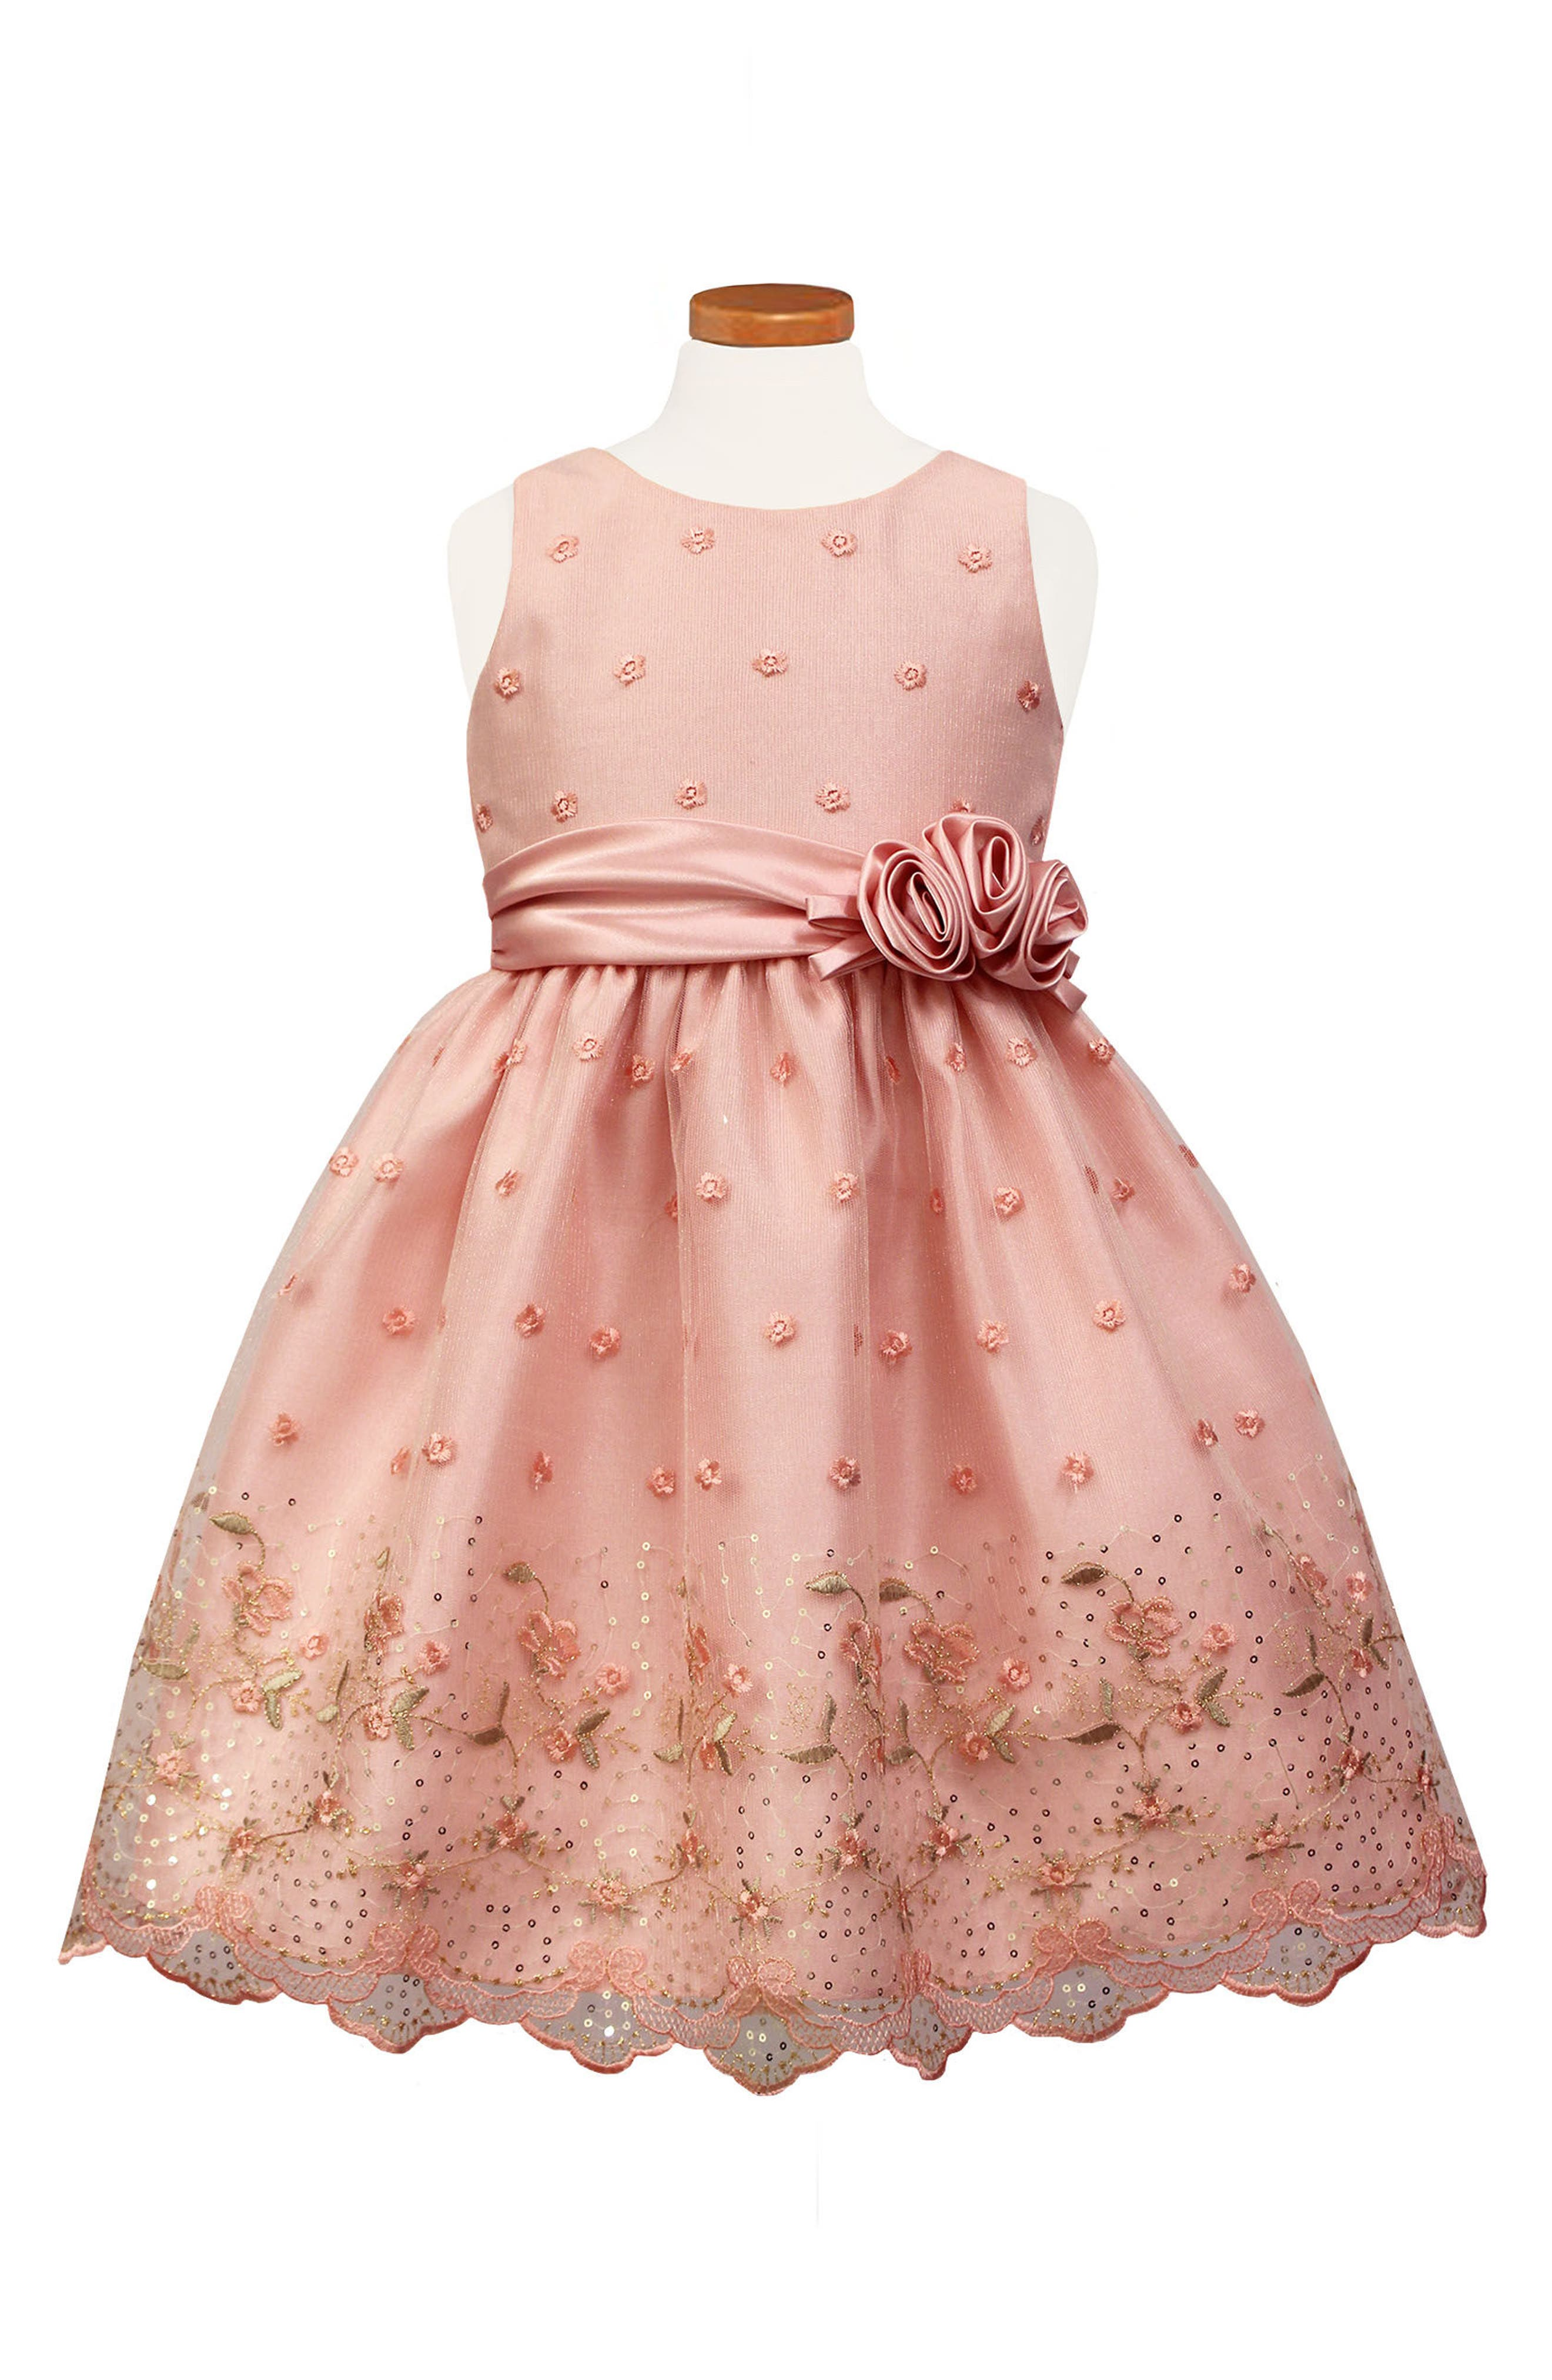 Main Image - Sorbet Flower Embroidered Party Dress (Big Girls)